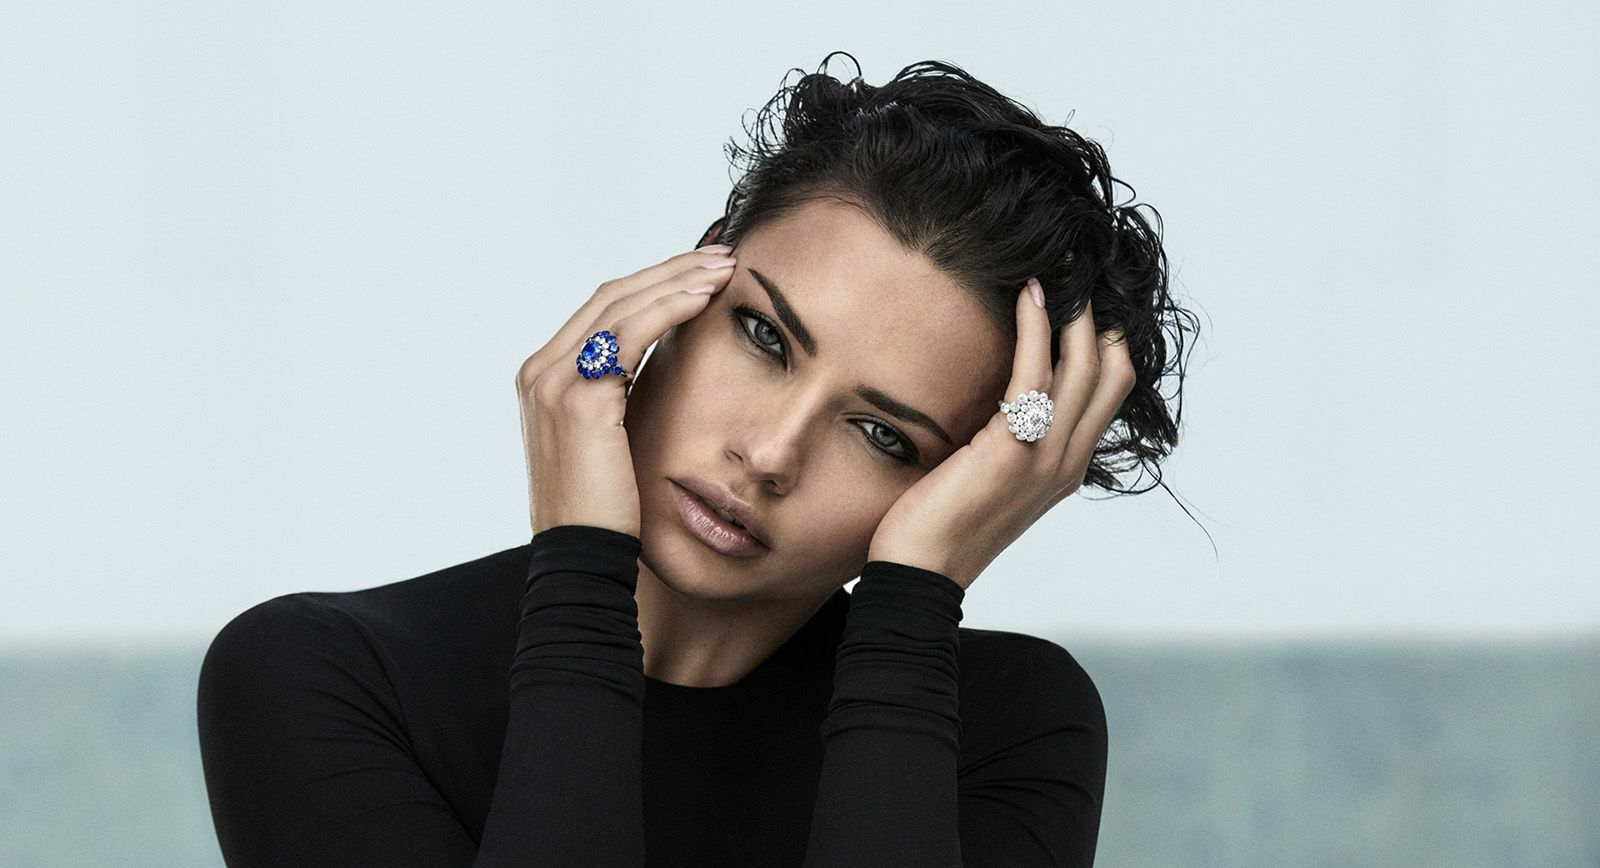 Chopard: The 'Magical Setting' collection realises the full potential of its precious stones